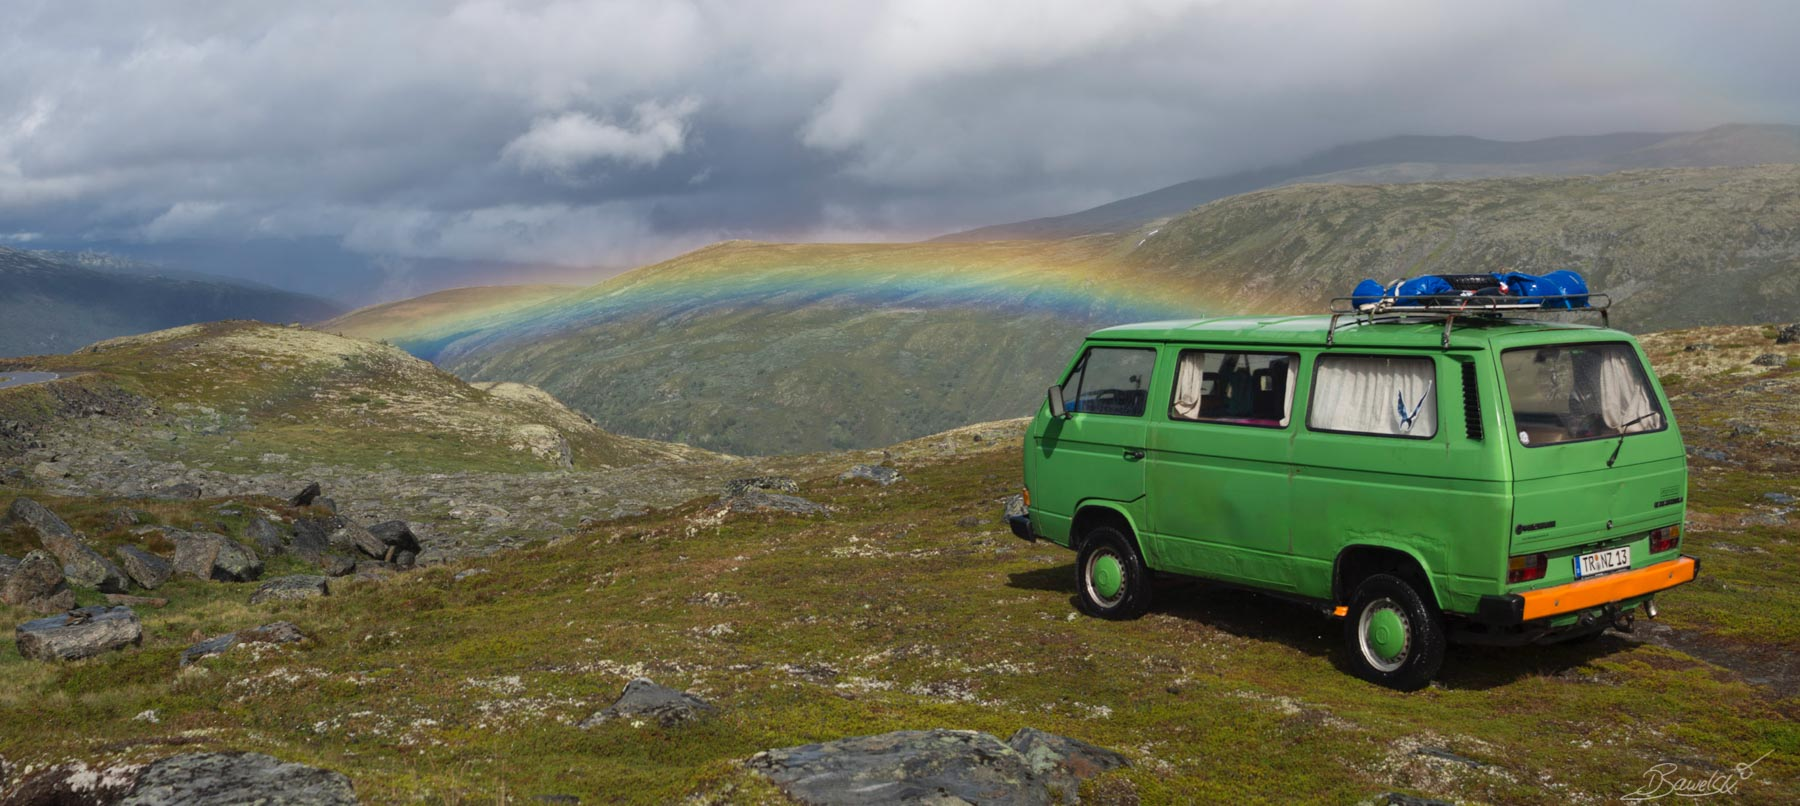 T3 Syncro on mountains with rainbow Vanlife